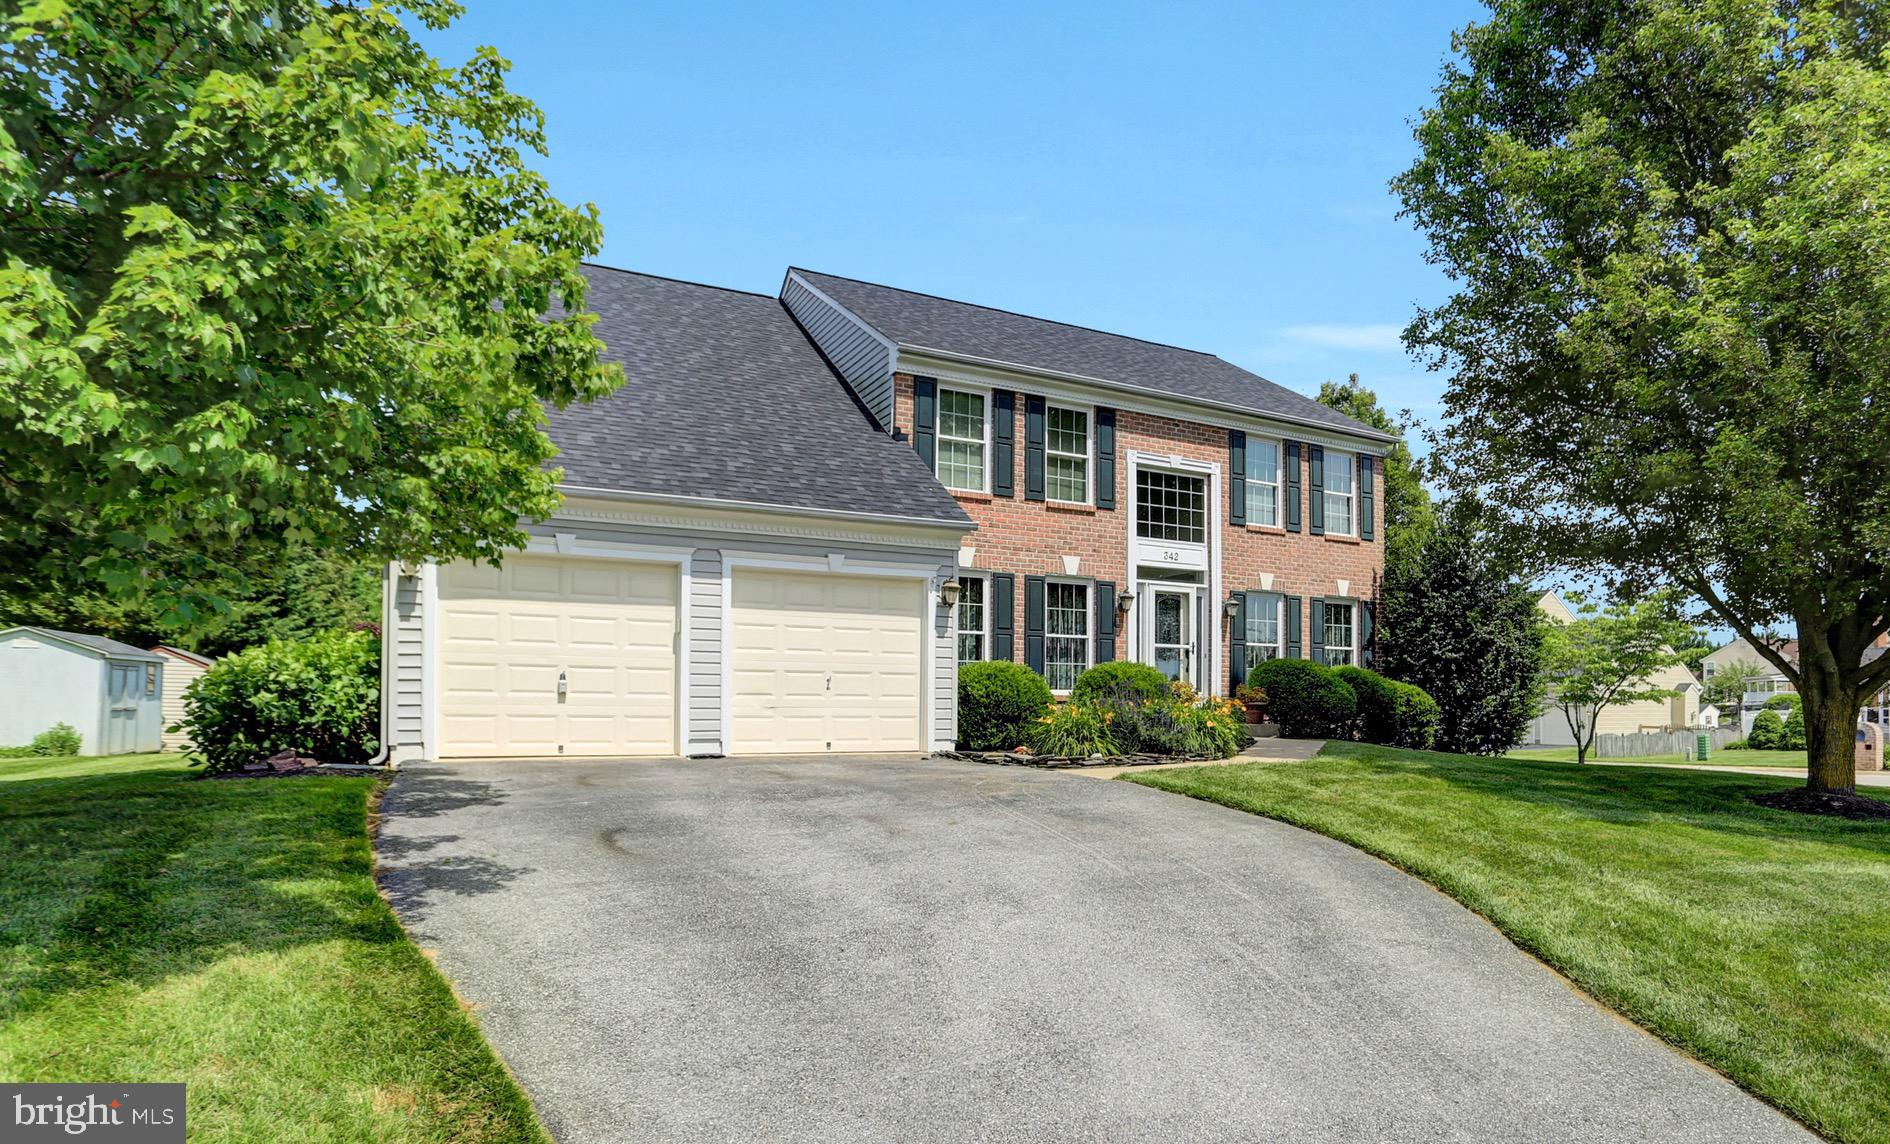 This beautiful 5+ bedroom 3 1/2 bath  Grayson home offers an exceptional amount of room to grow the